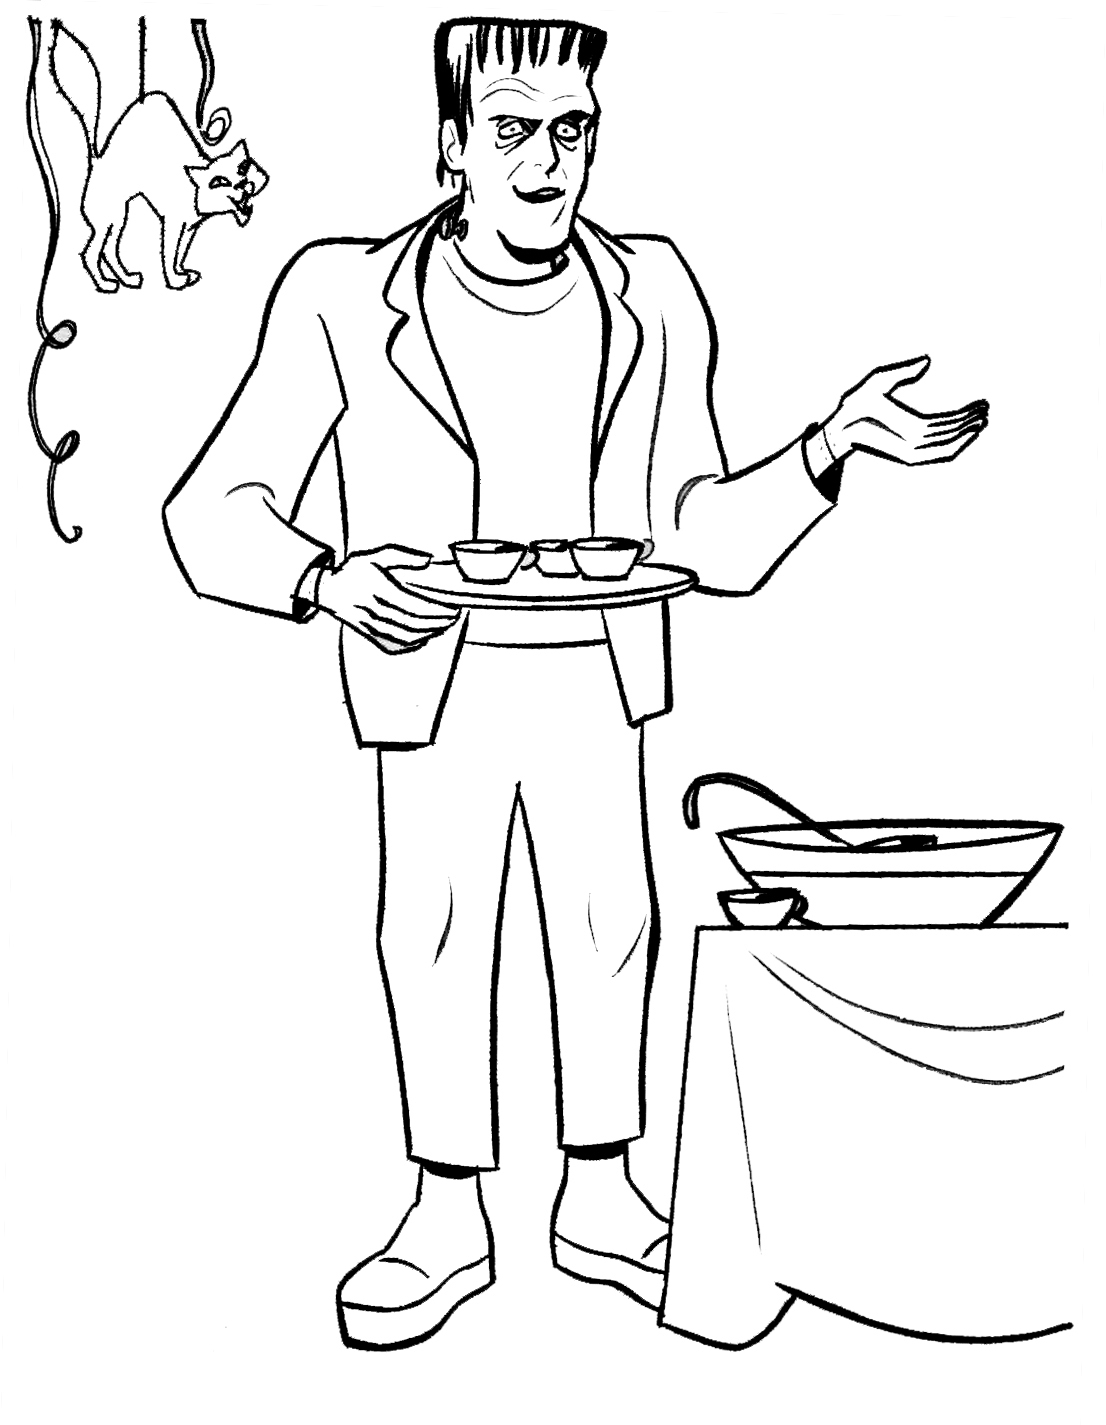 o ween coloring pages - photo #44